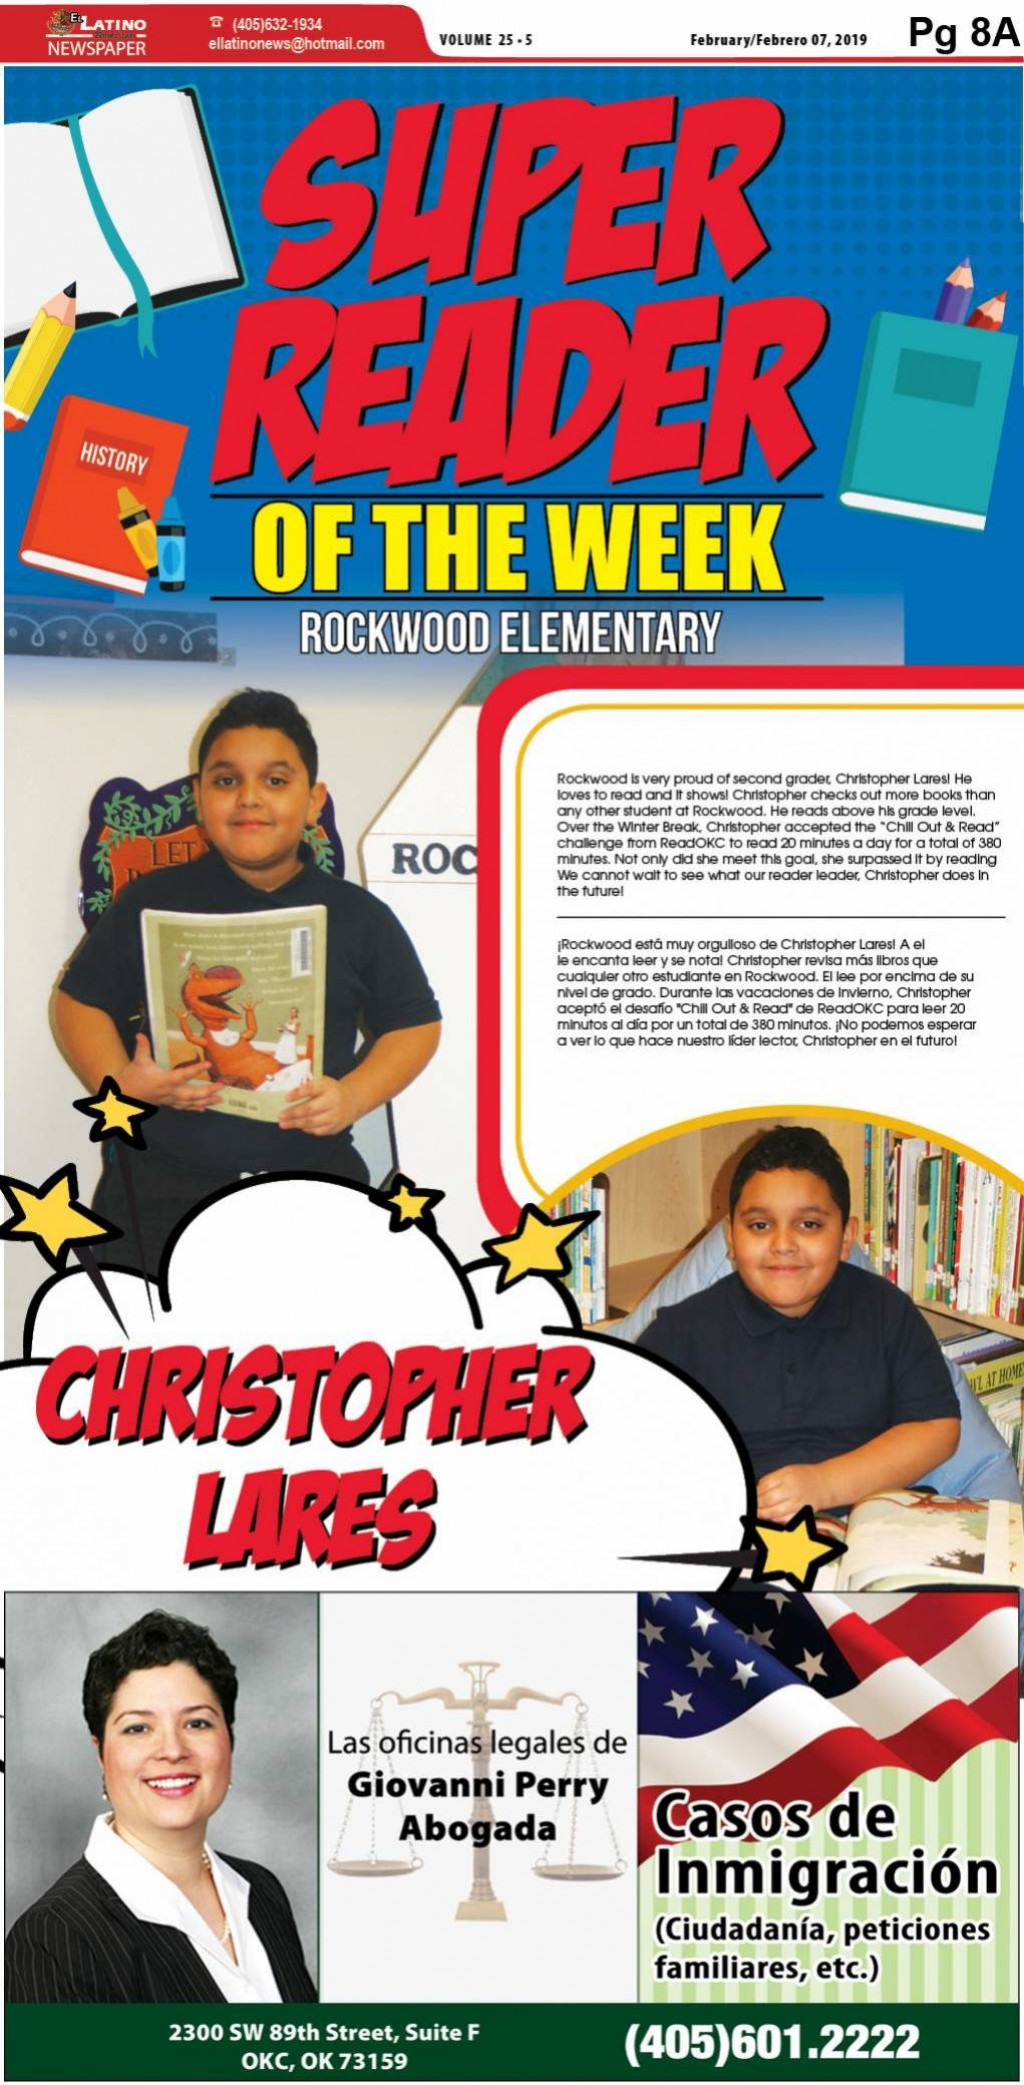 Super Reader of the Week: Christopher Lares